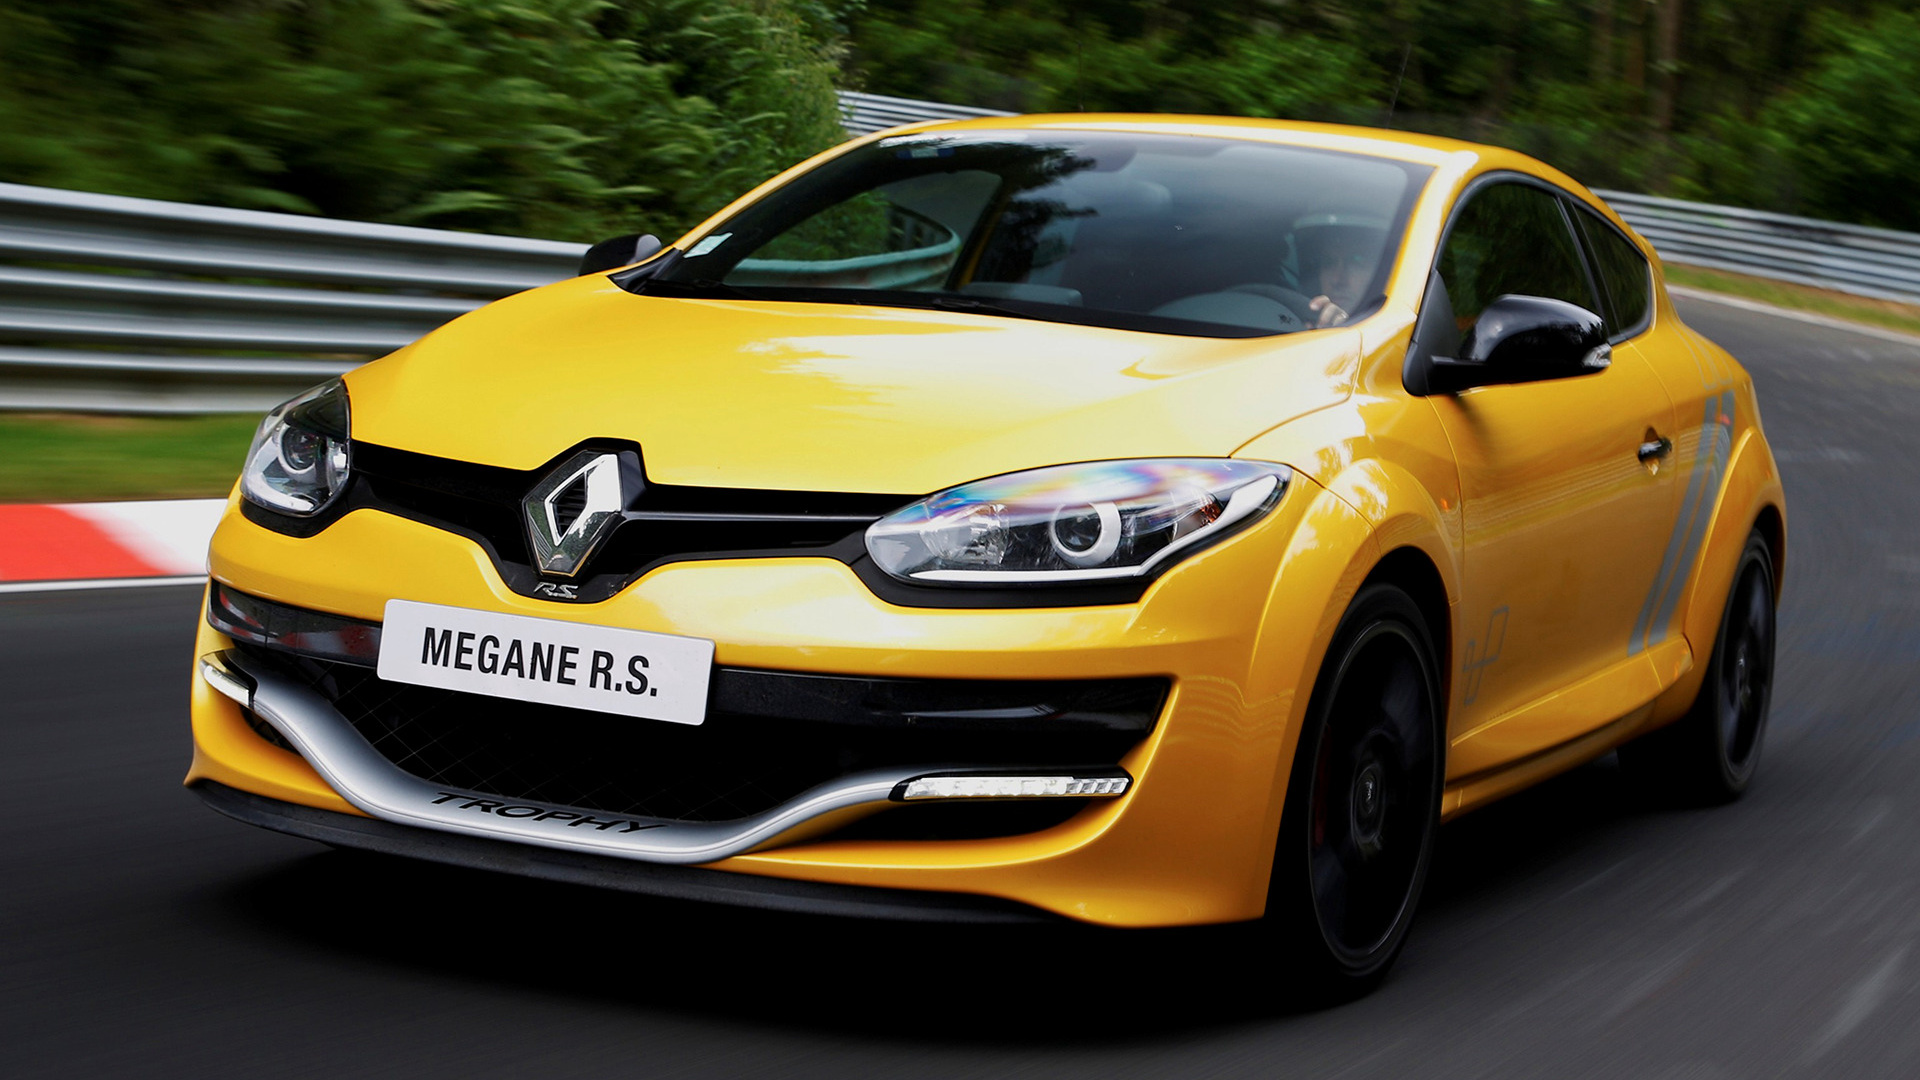 renault-megane-rs-275-trophy-2014-wallpapers-and-hd-images-1920-x-1080-1